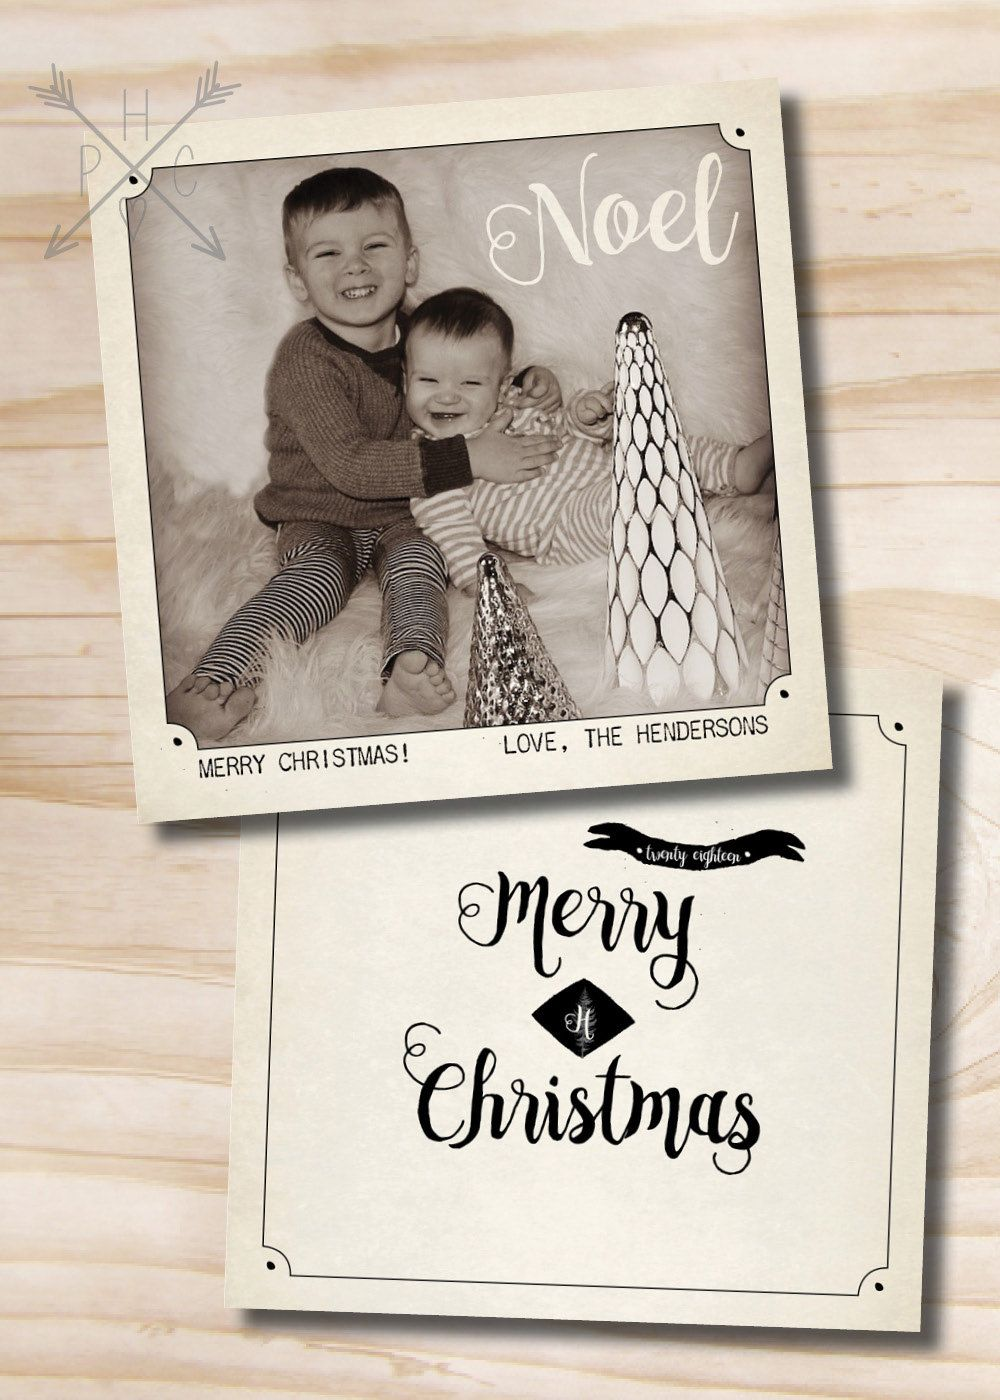 Christmas Card vectors and photos - free graphic resources